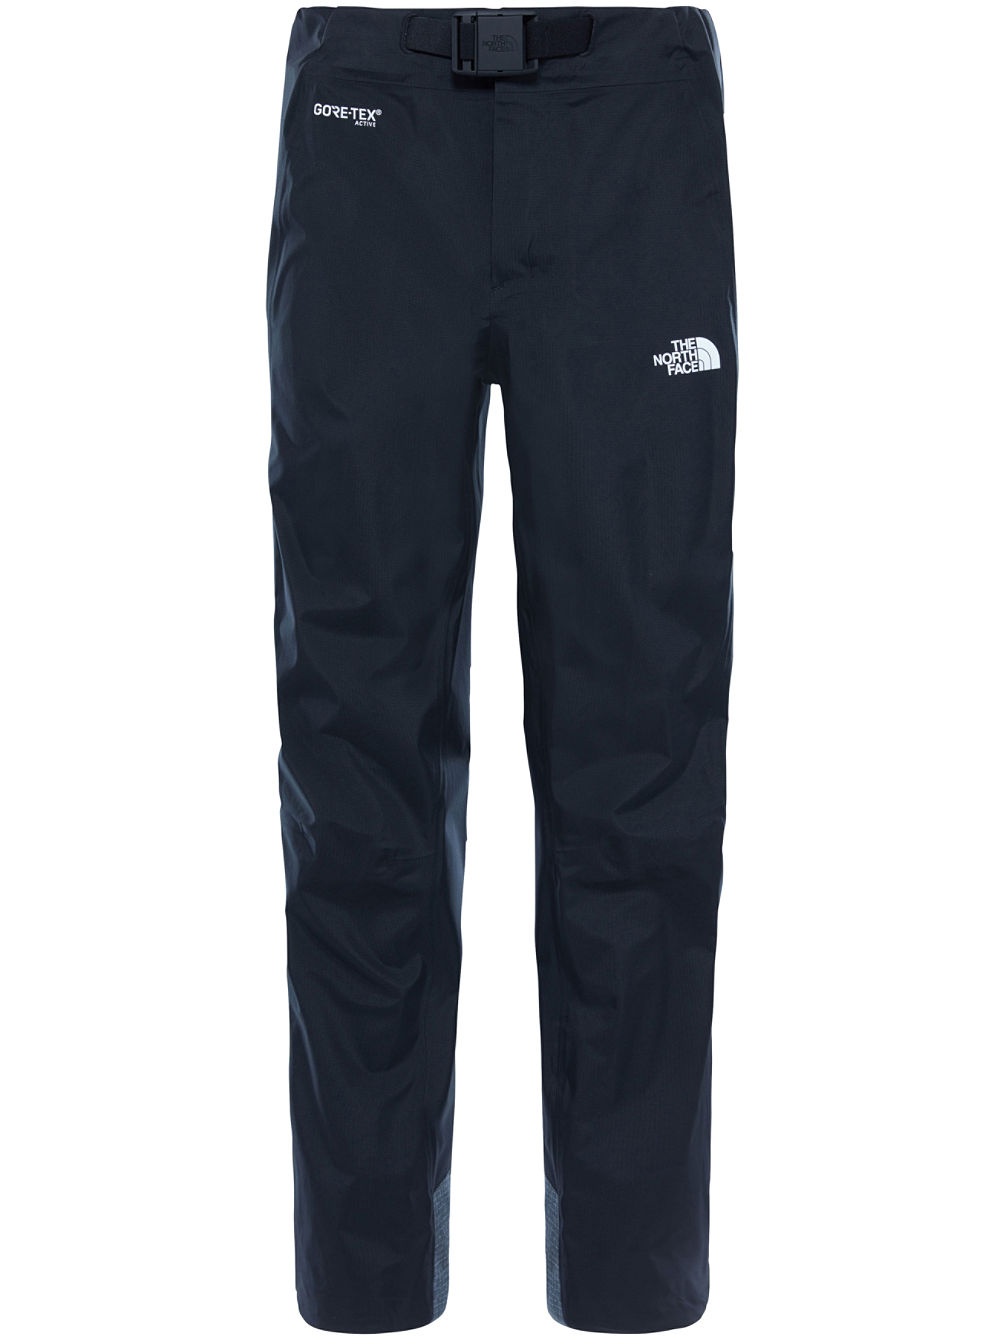 Shinpuru II Long Outdoorhose